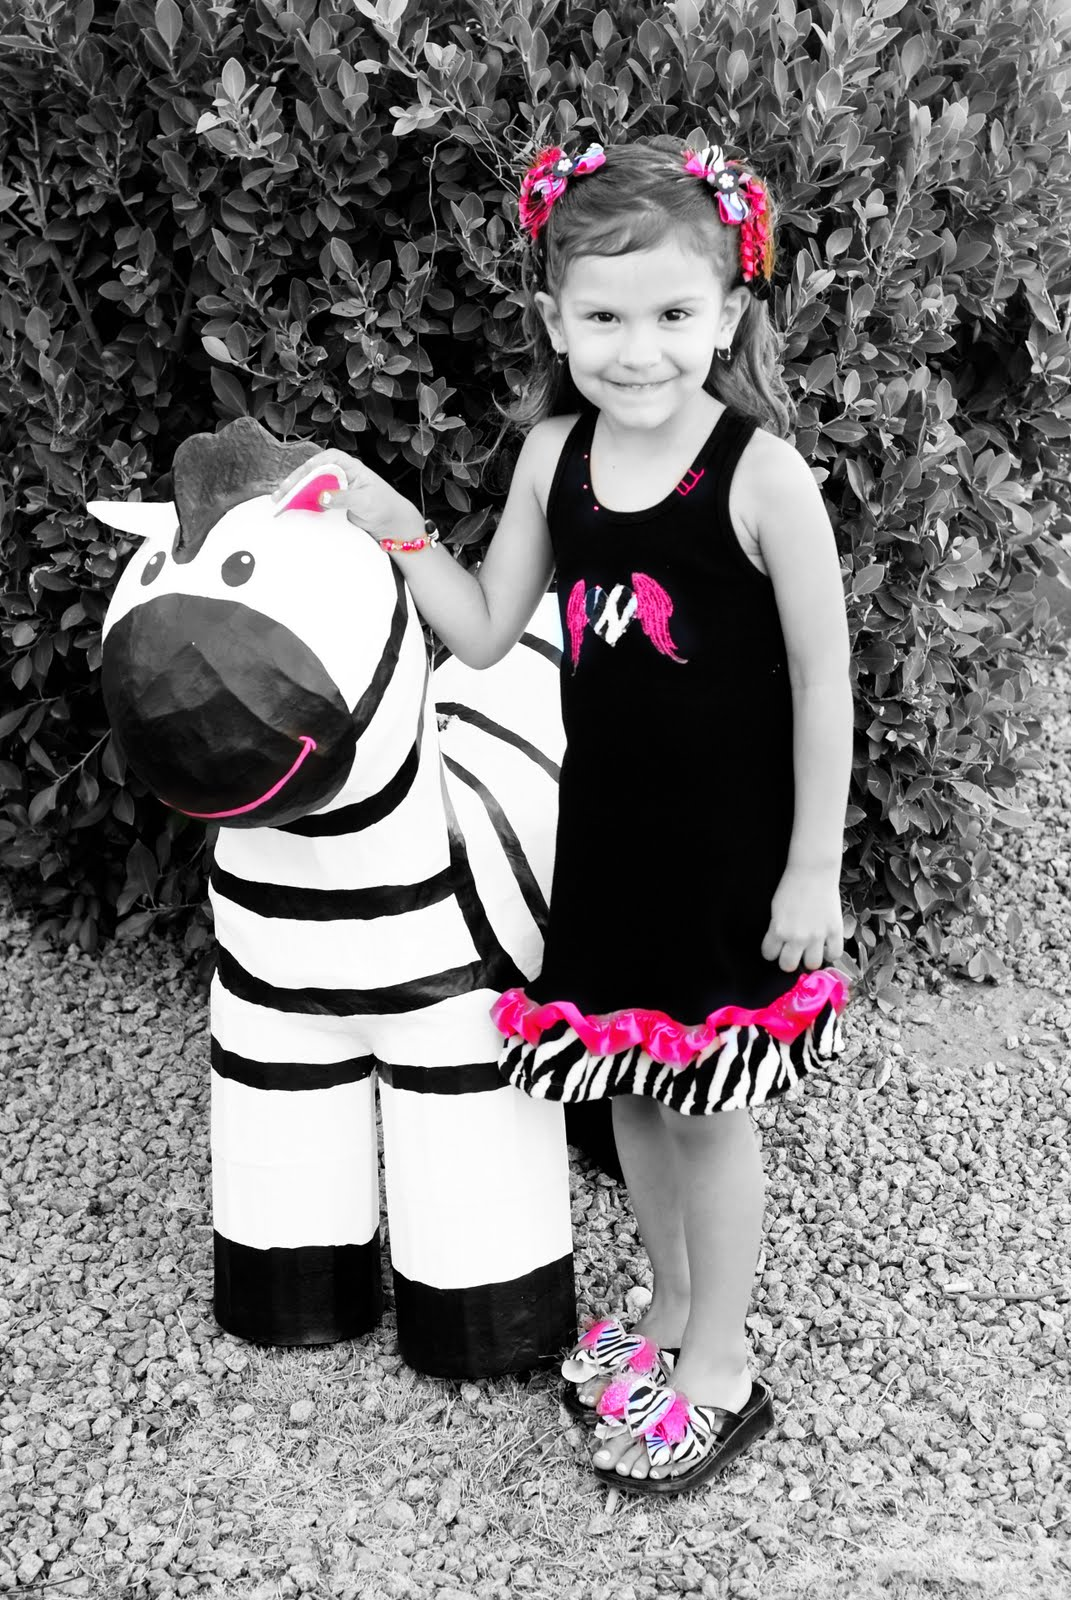 zebra and the girl